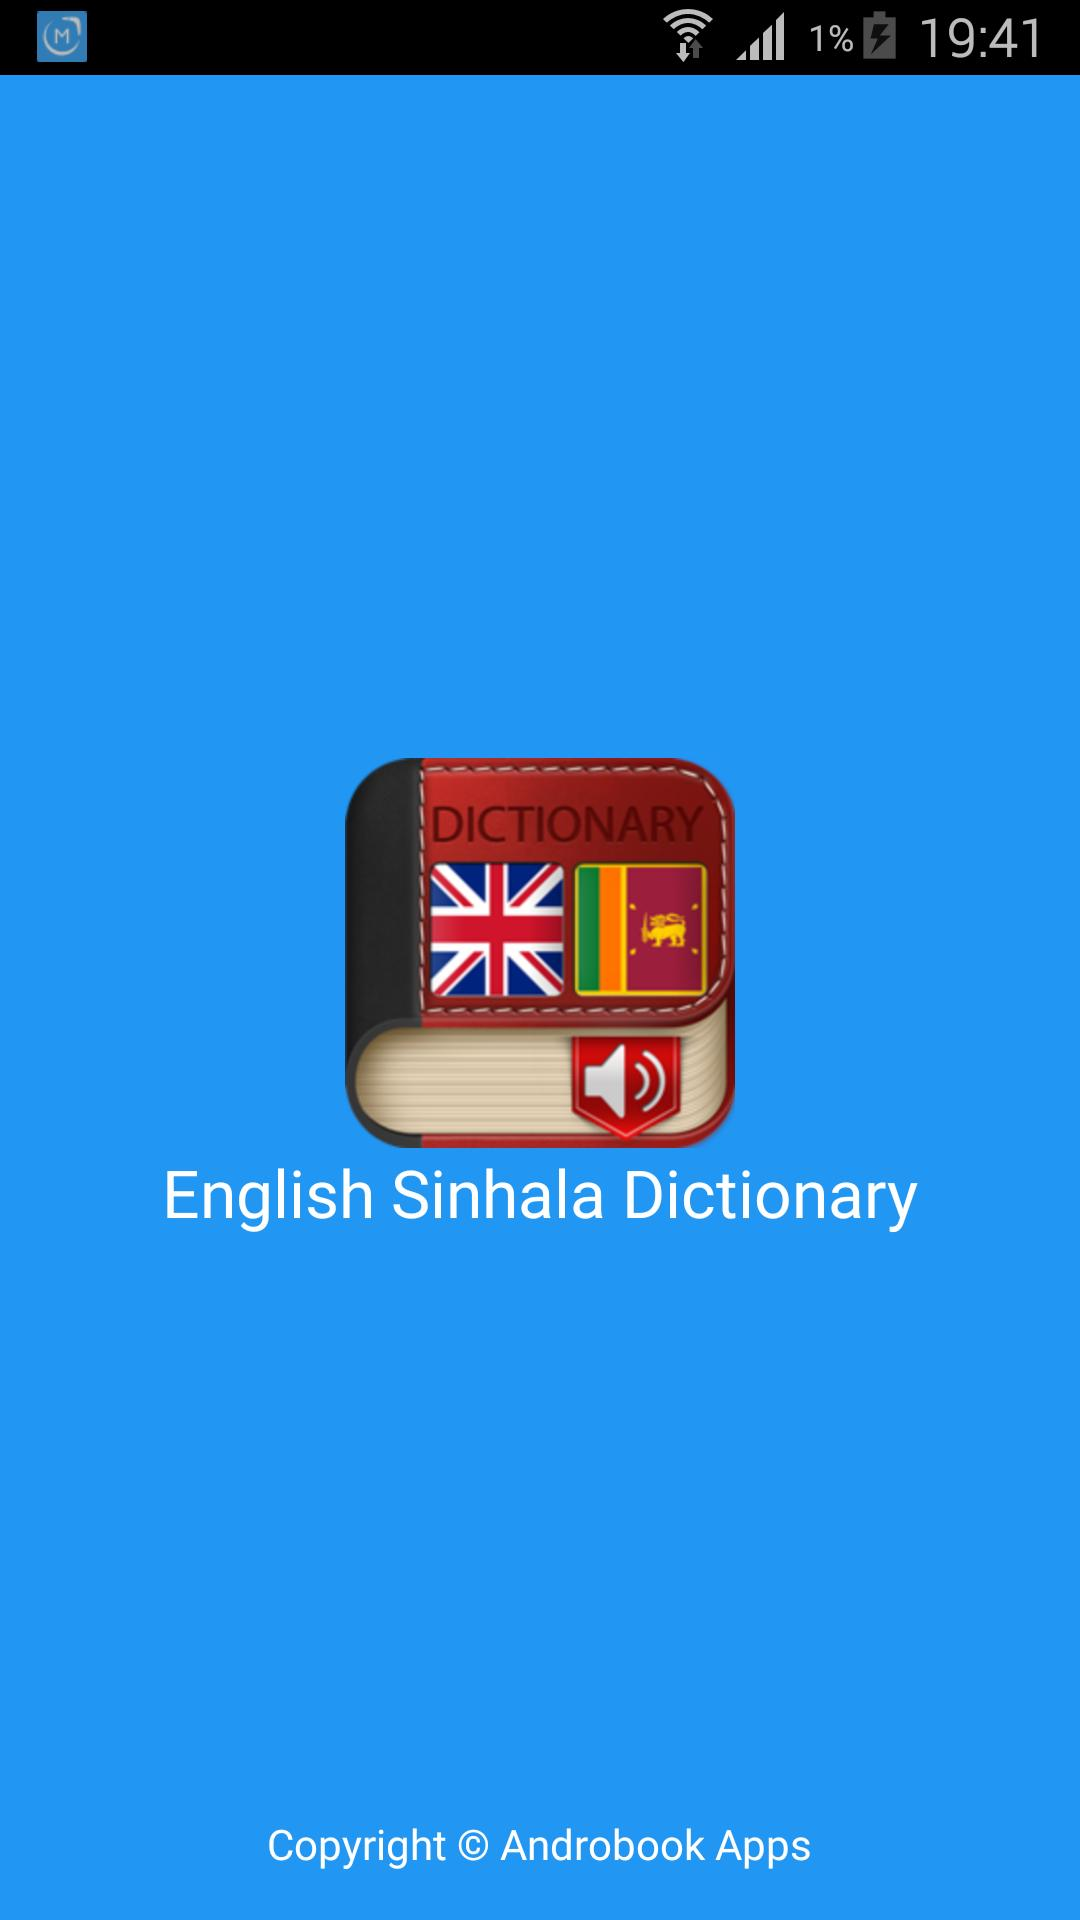 English Sinhala Dictionary for Android - APK Download